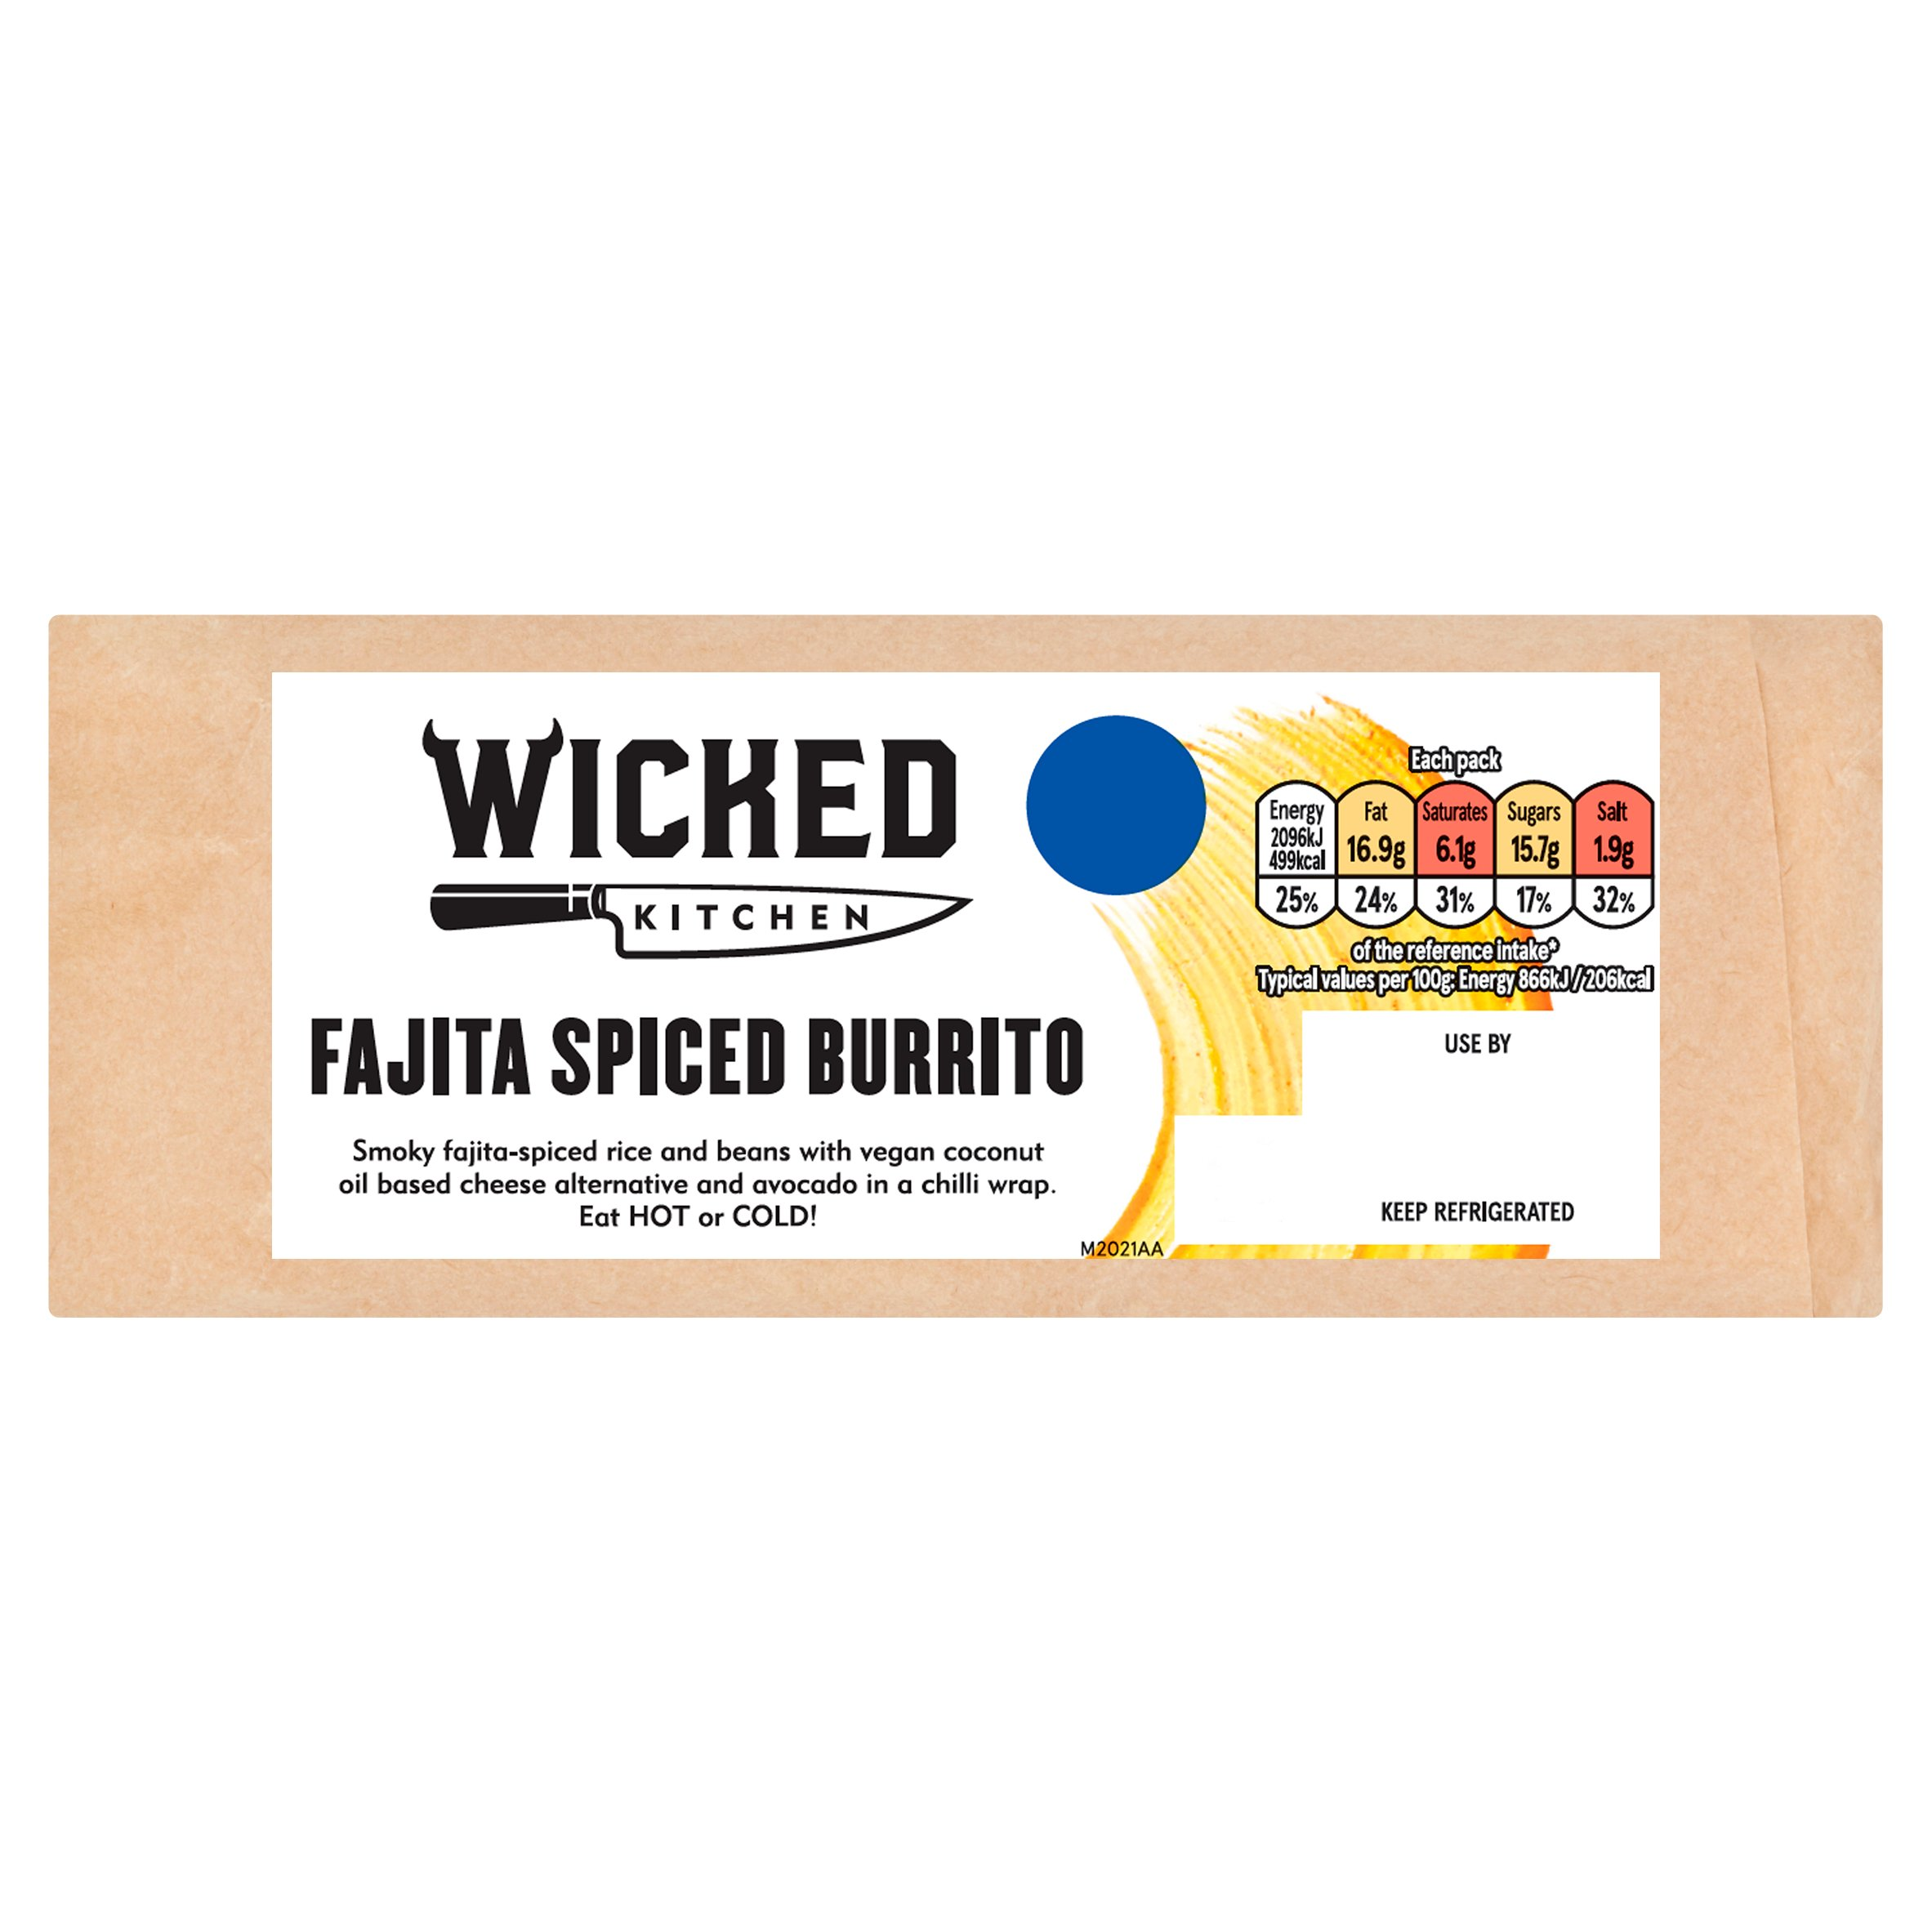 Wicked Kitchen Fajita Spiced Burrito